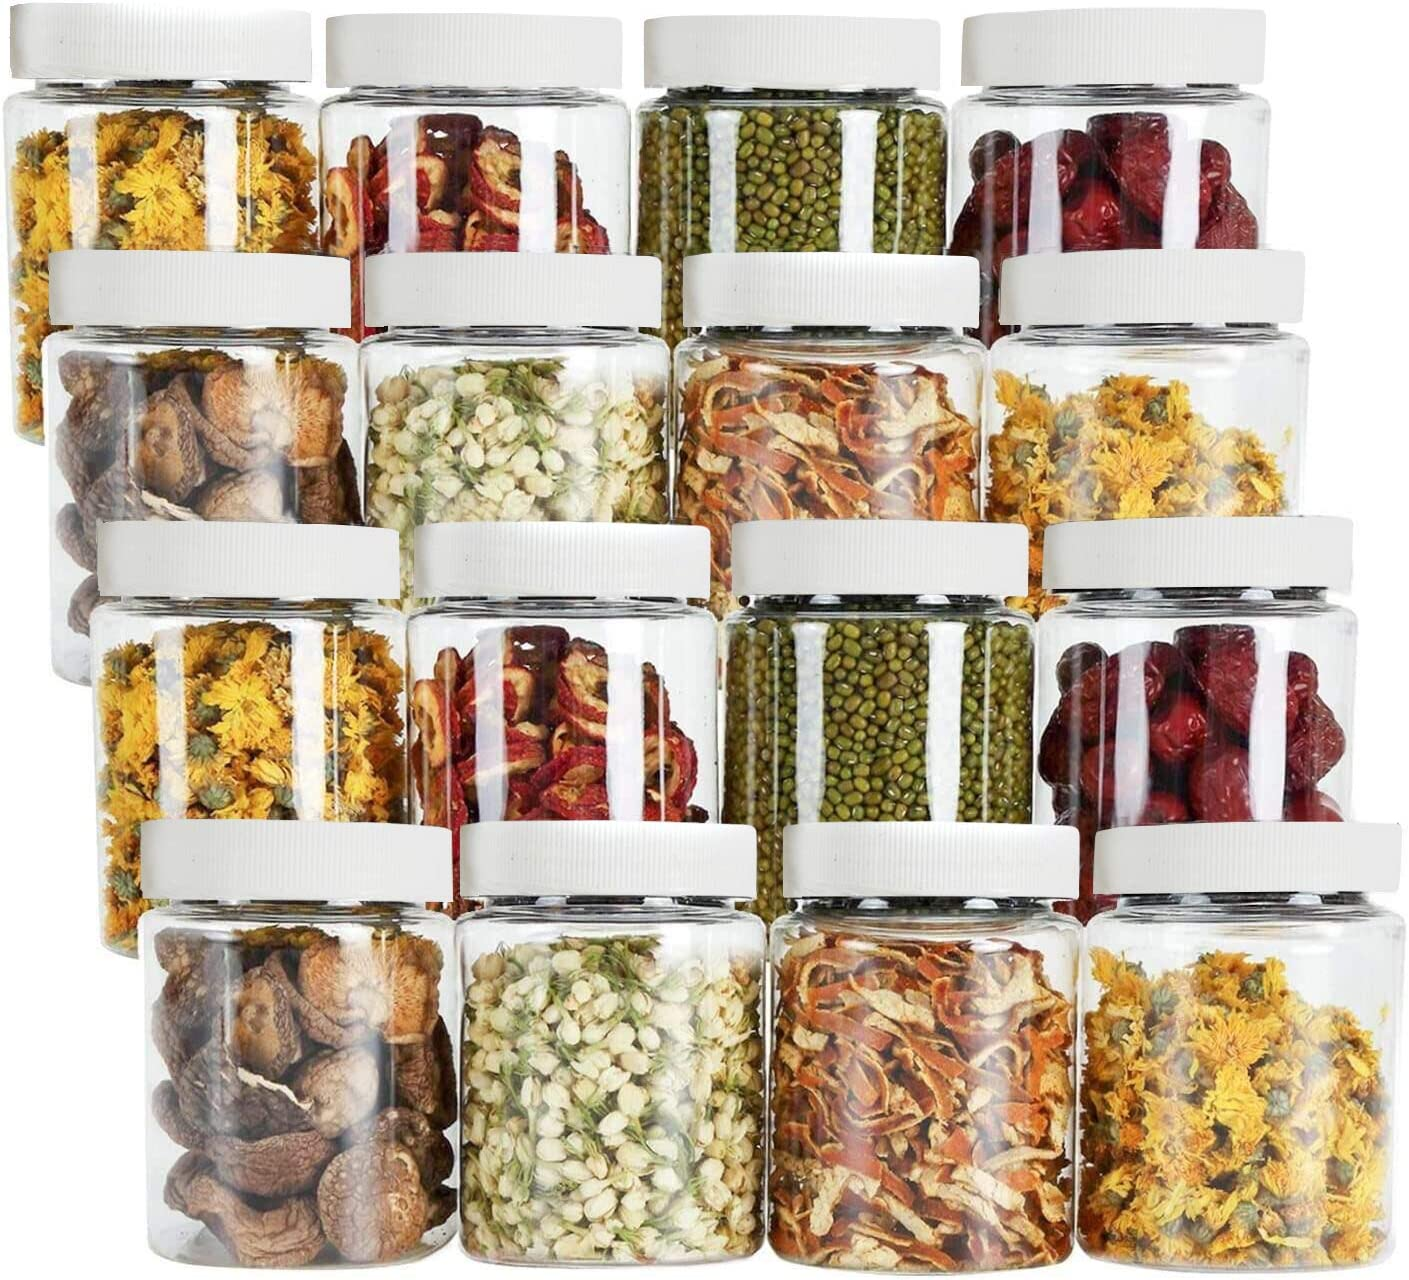 Tebery 16 Pack Round Plastic Jars Bottles Canisters with White Ribbed Lids 16-Ounce Airtight Food Containers for Kitchen & Household Storage